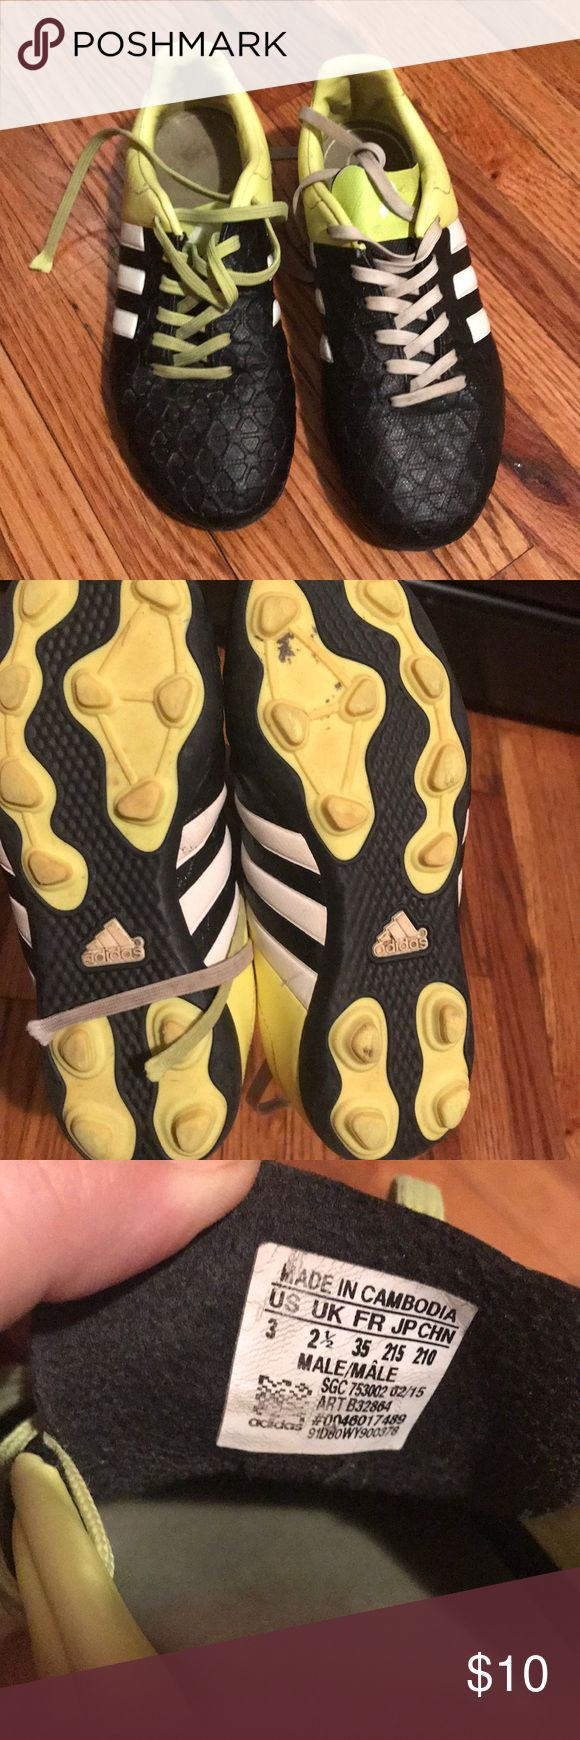 Kids Soccer shoes in very good condition No damages adidas Shoes Sneakers